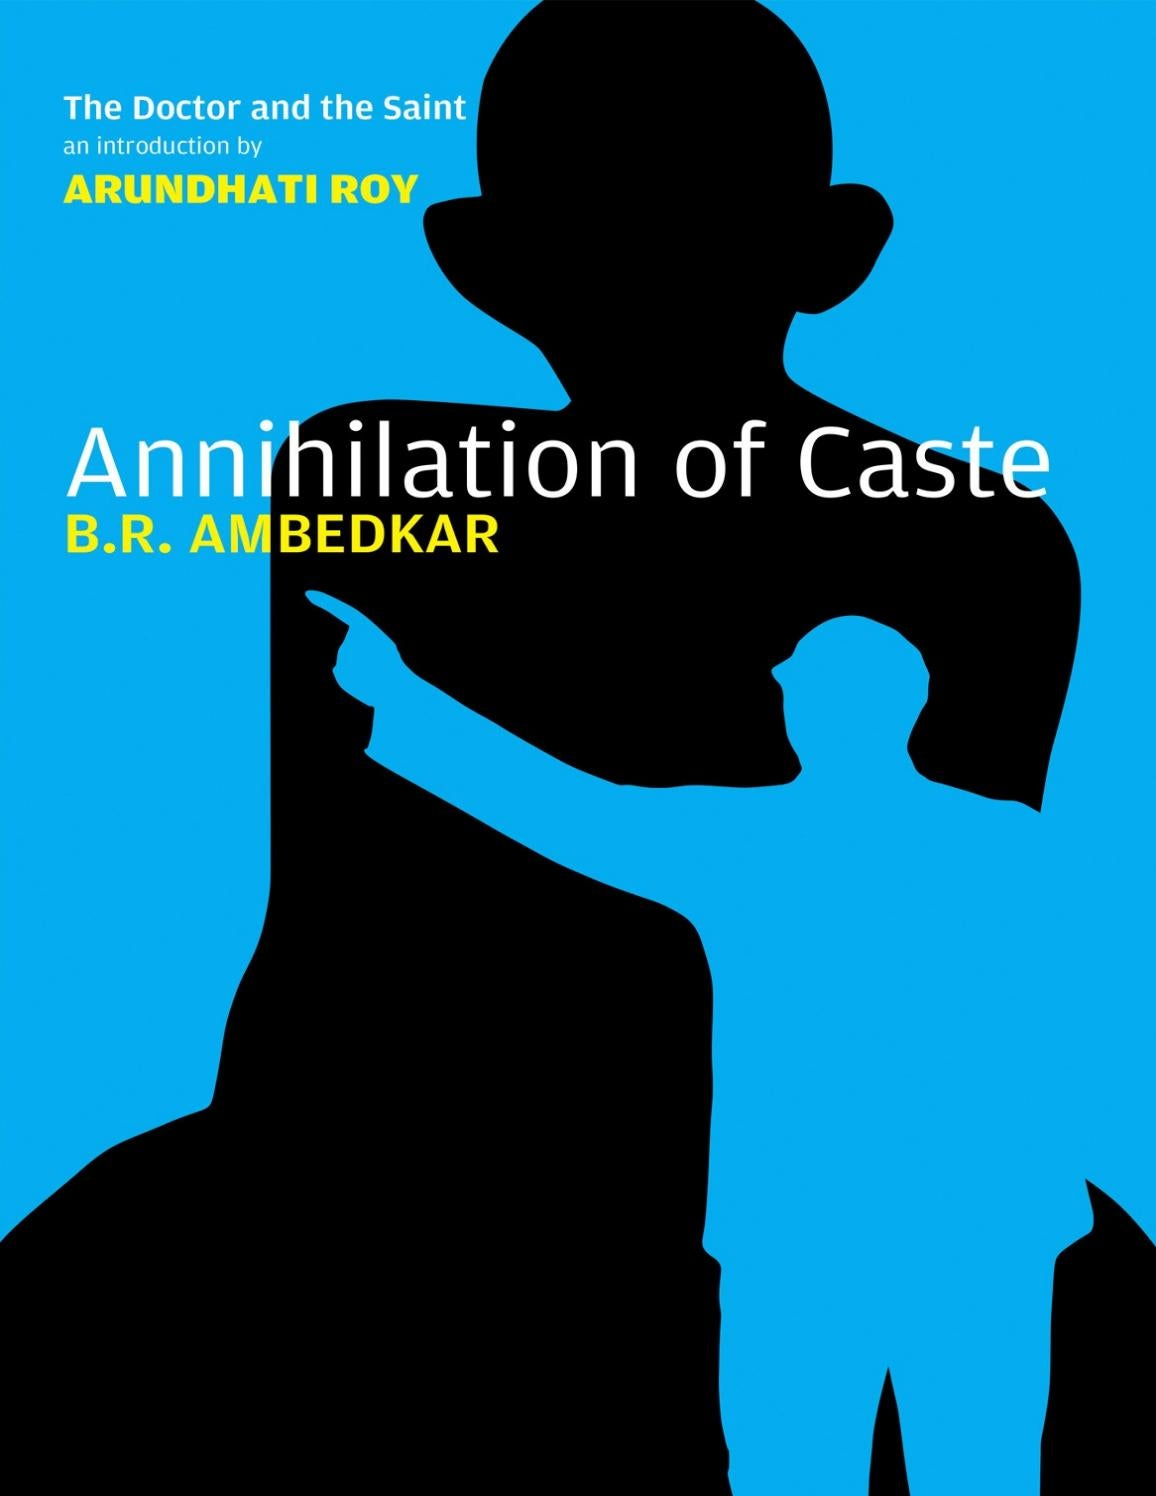 Annihilation of caste ambedkar, arundhati roy by Xceptionist - issuu